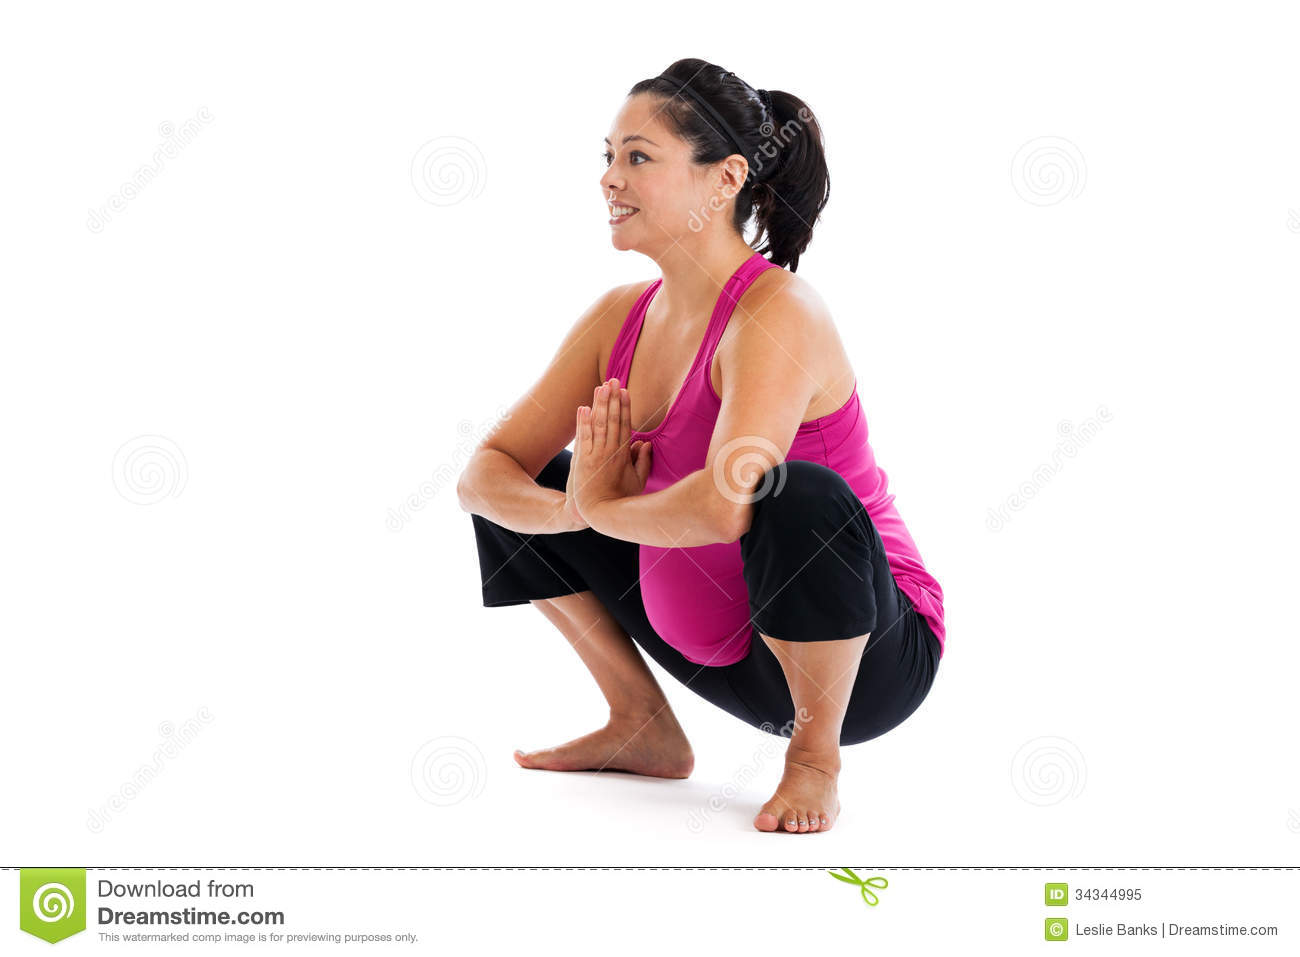 pregnant-woman-squatting-beautiful-fit-hispanic-pose-isolated-white-background-34344995